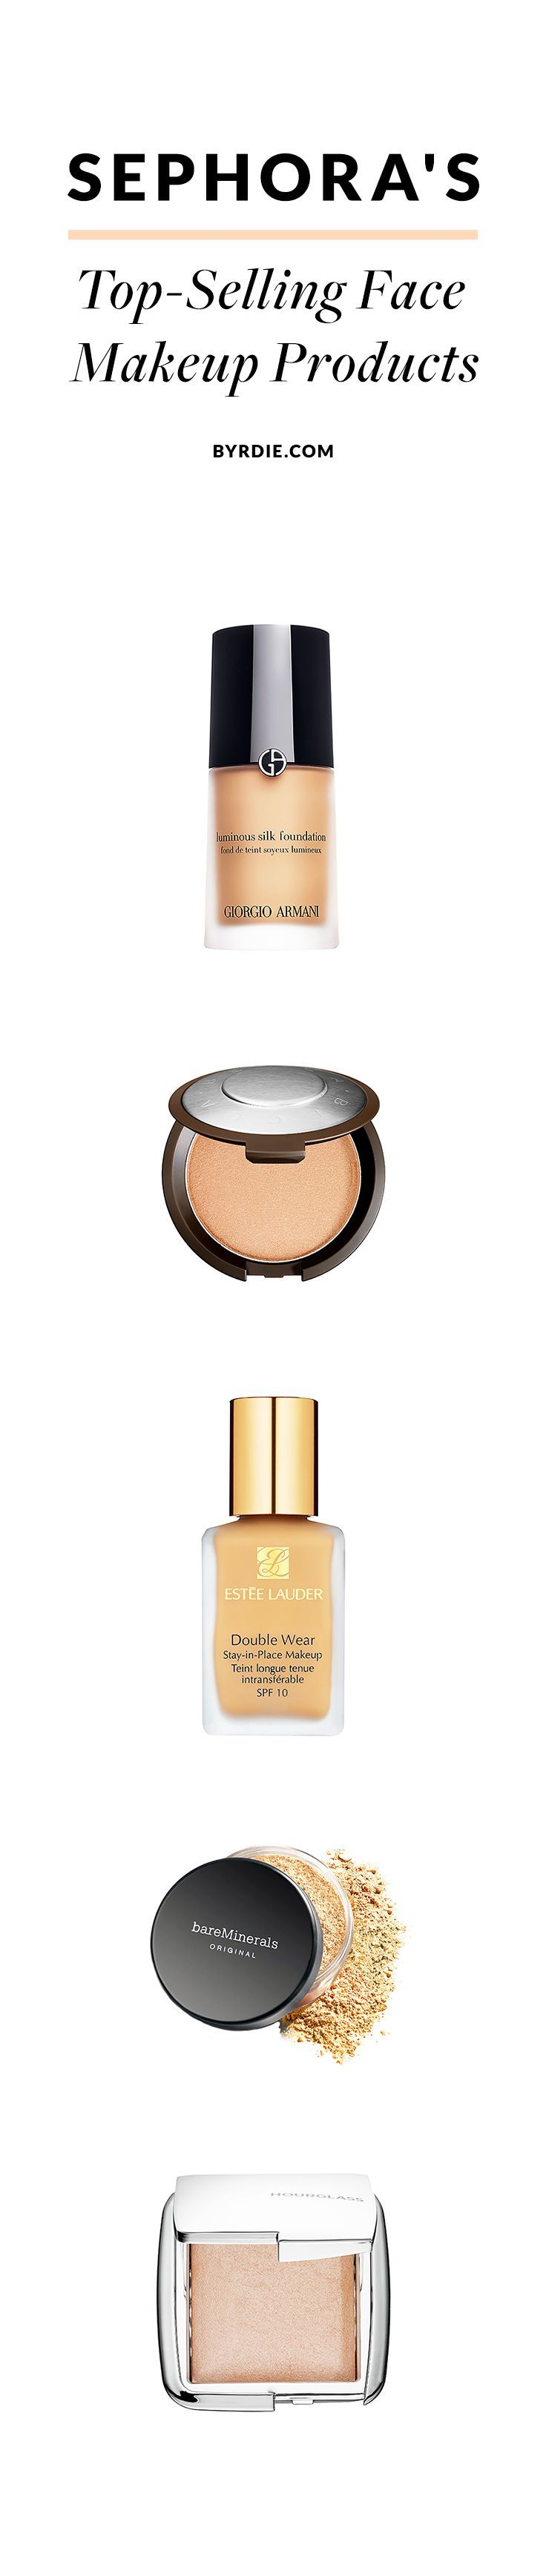 The best-selling skin makeup products at Sephora